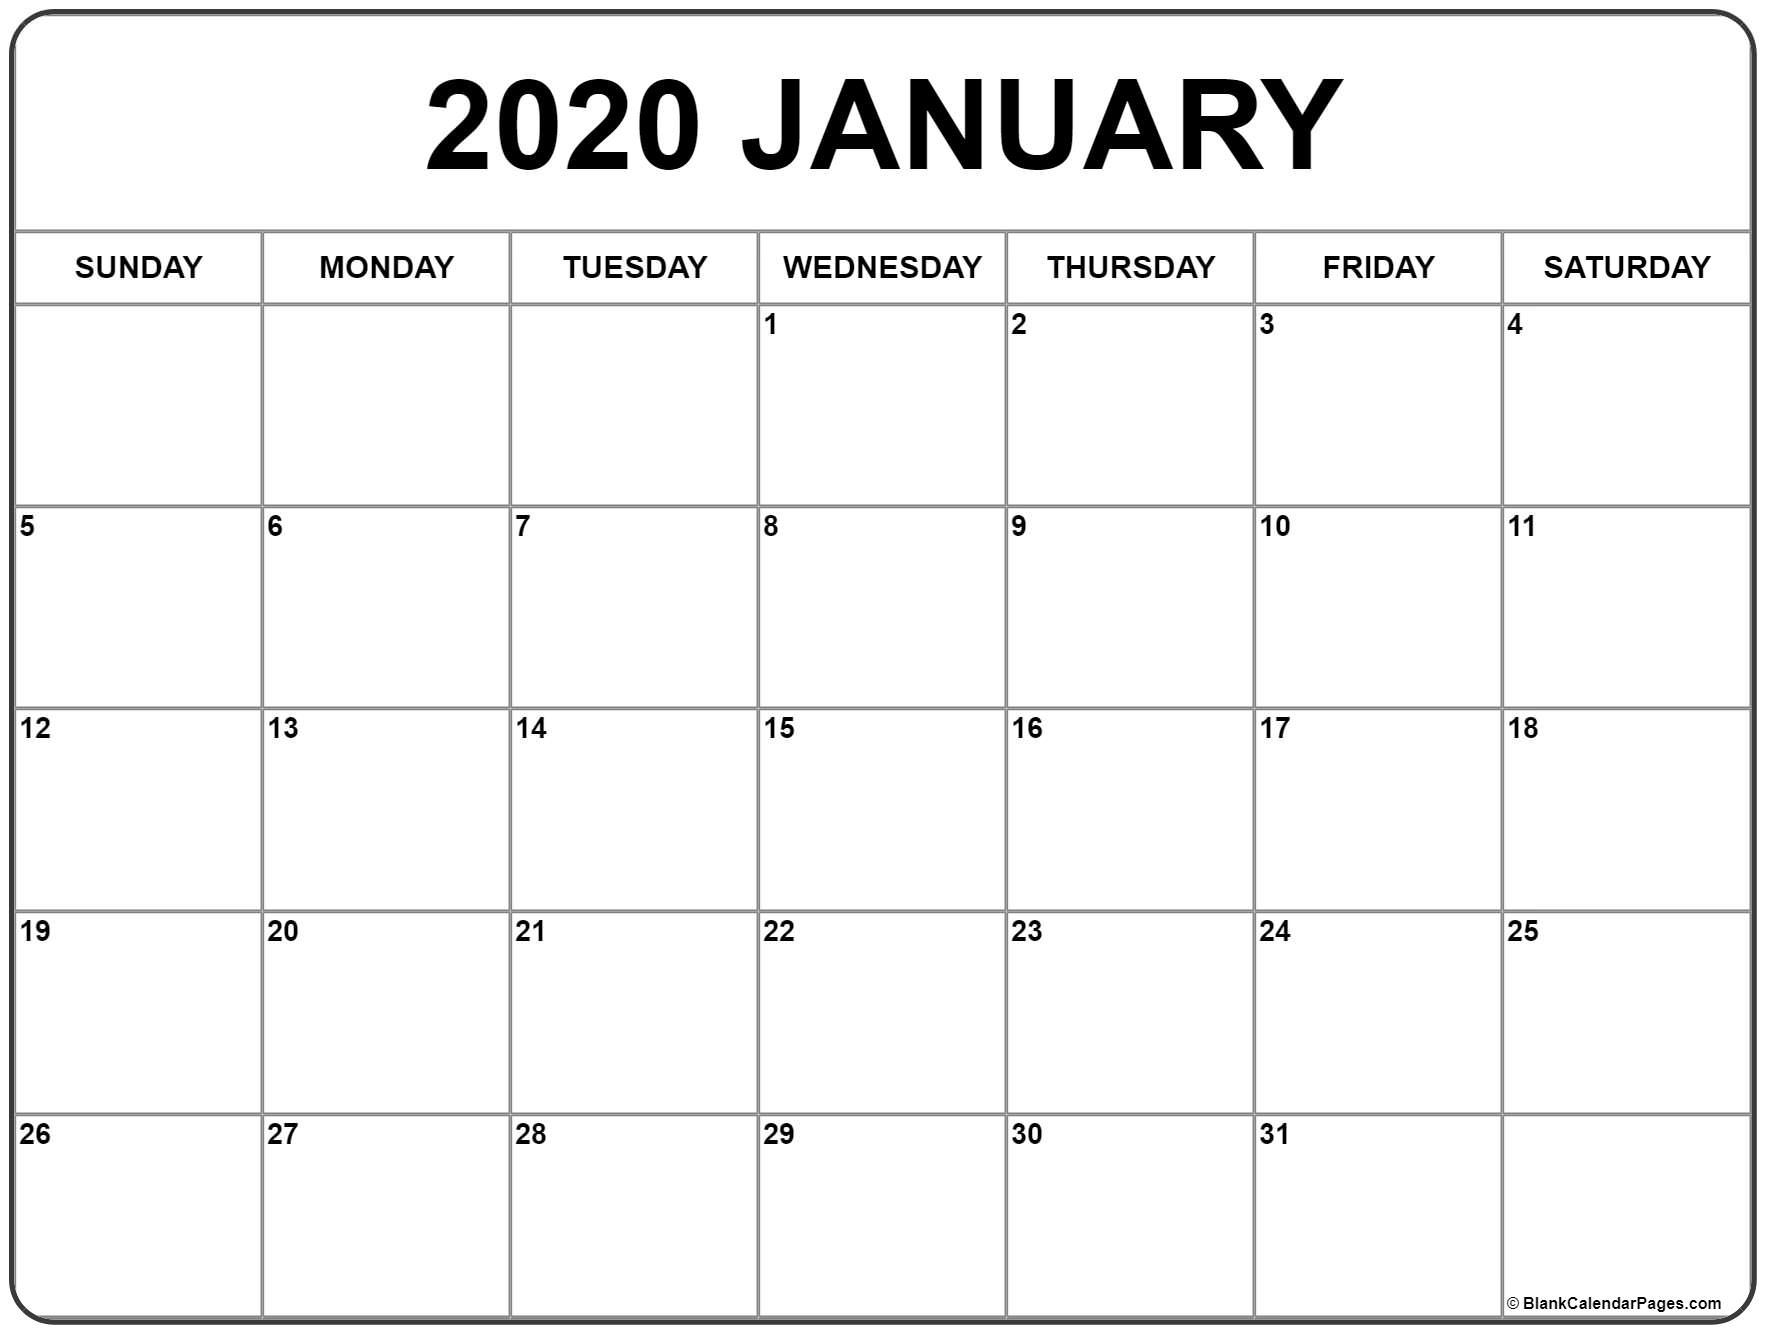 January 2020 Calendar | Free Printable Monthly Calendars throughout Free Printable Monthly Calendar 2020 Template